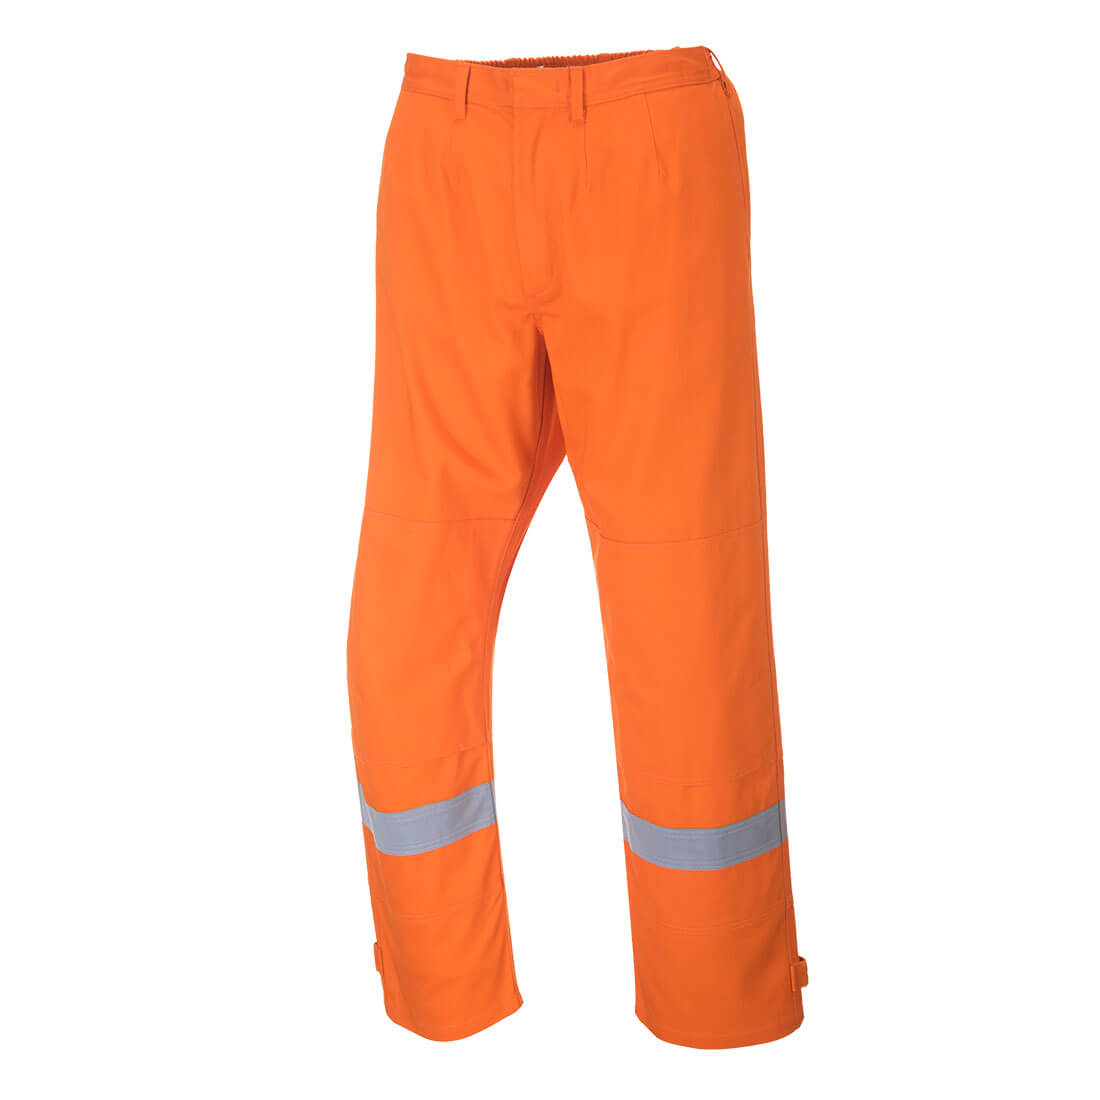 Image of Biz Flame Plus Mens Flame Resistant Trousers Orange Large 32""